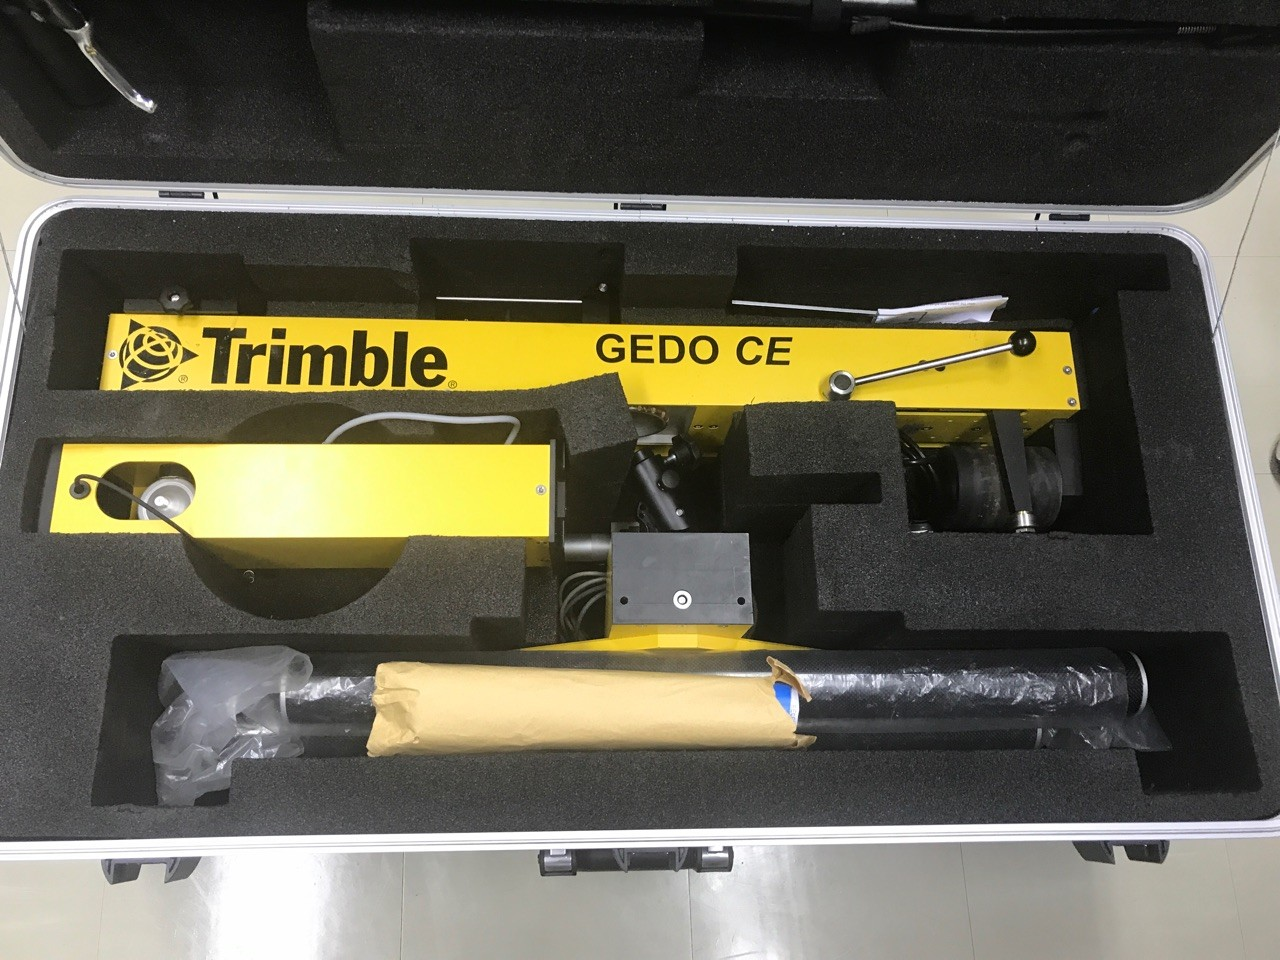 Trimble Gedo軌道測量